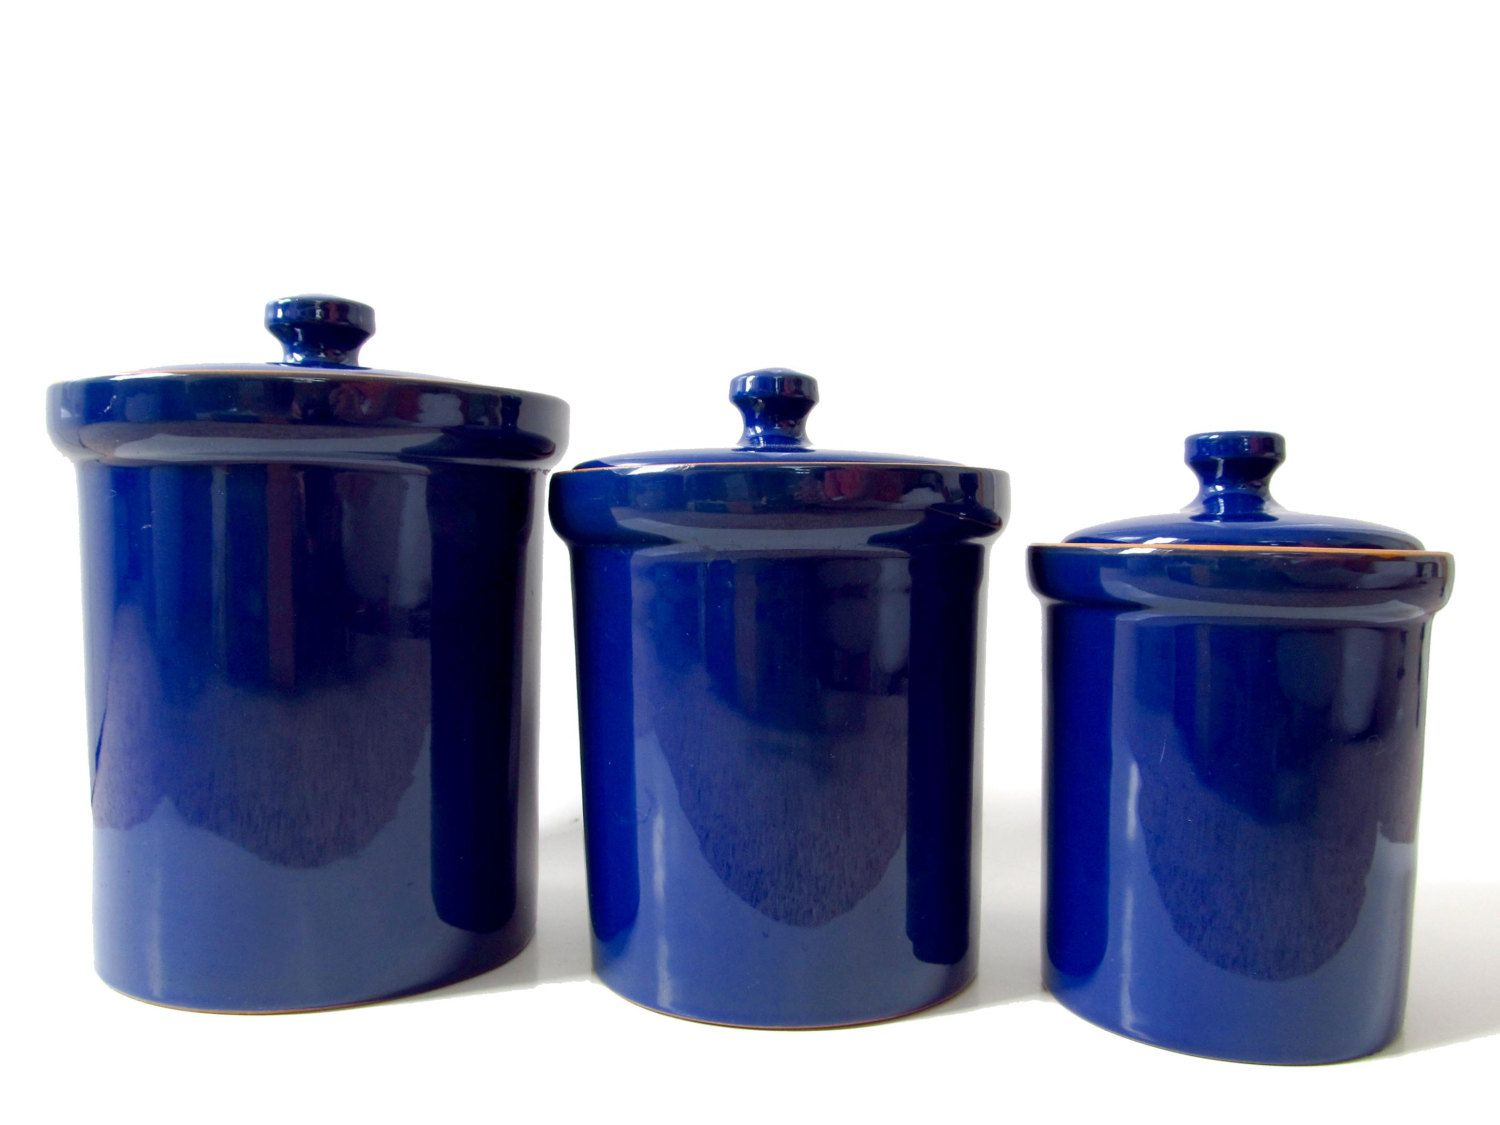 blue kitchen canister cobalt blue ceramic canister set made in italy italian kitchen accessory royal navy blue kitchen